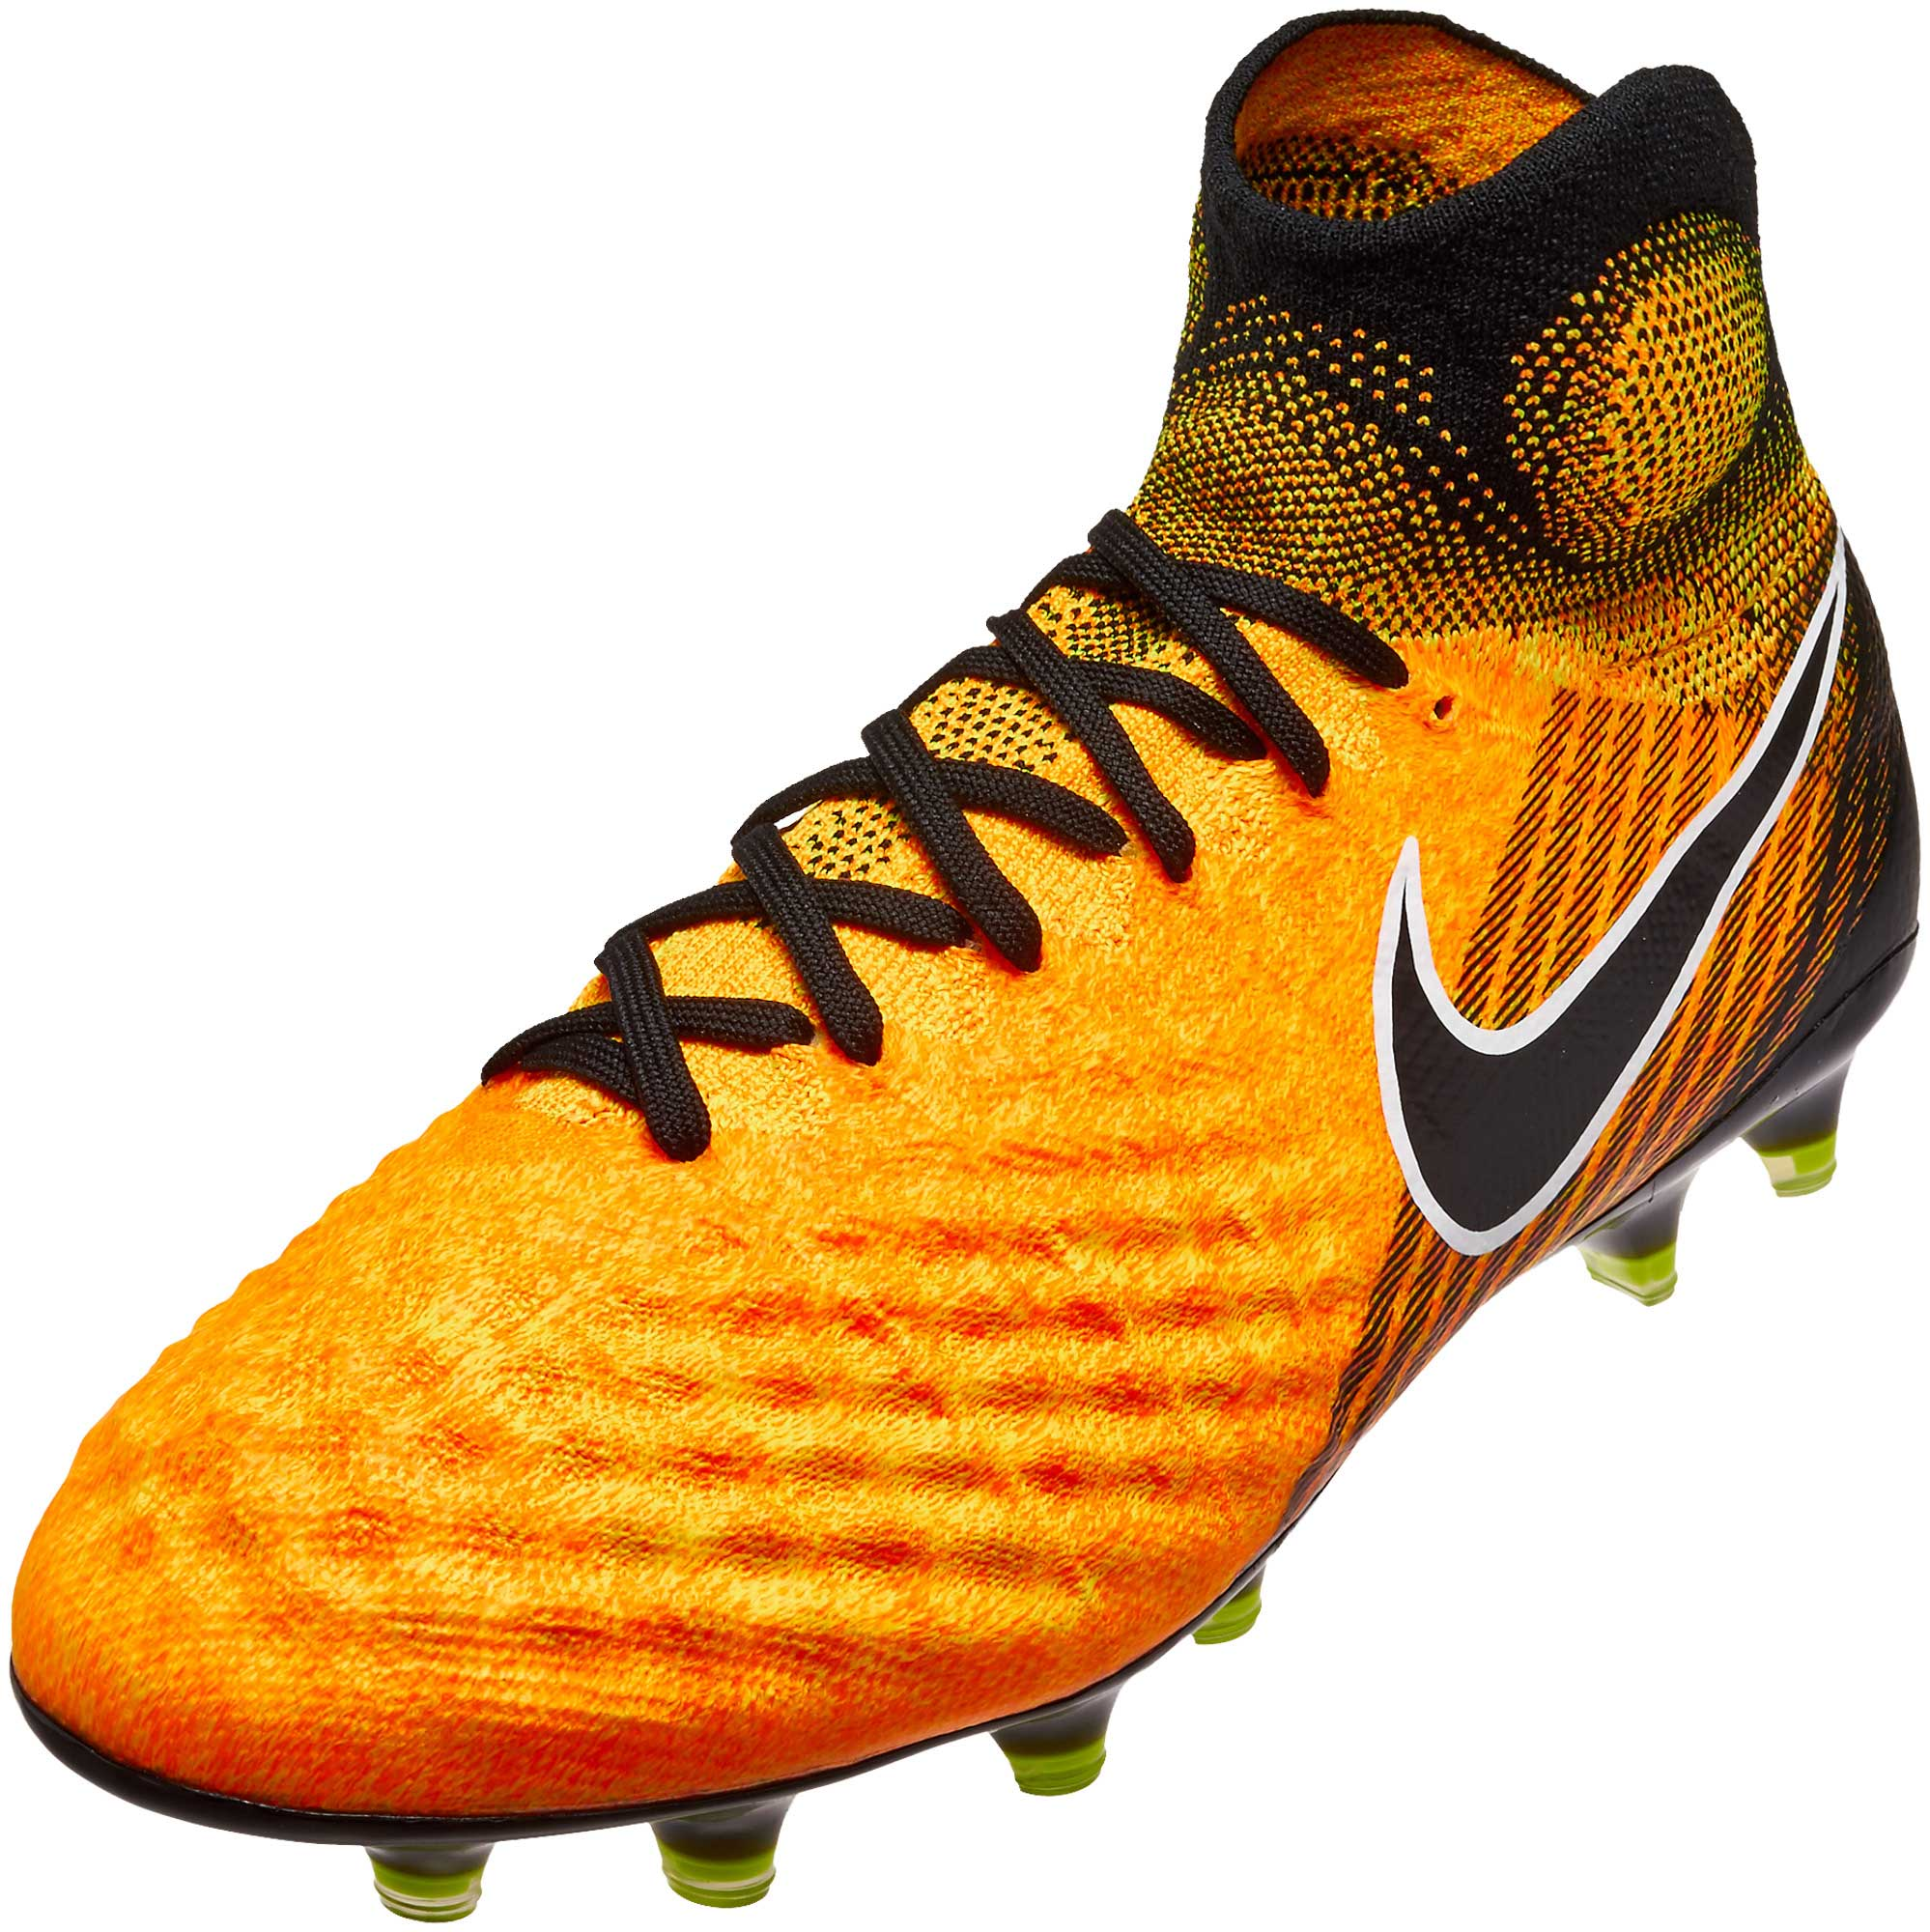 chaussures de séparation 555ad 2c1b6 nike magista obra ii yellow